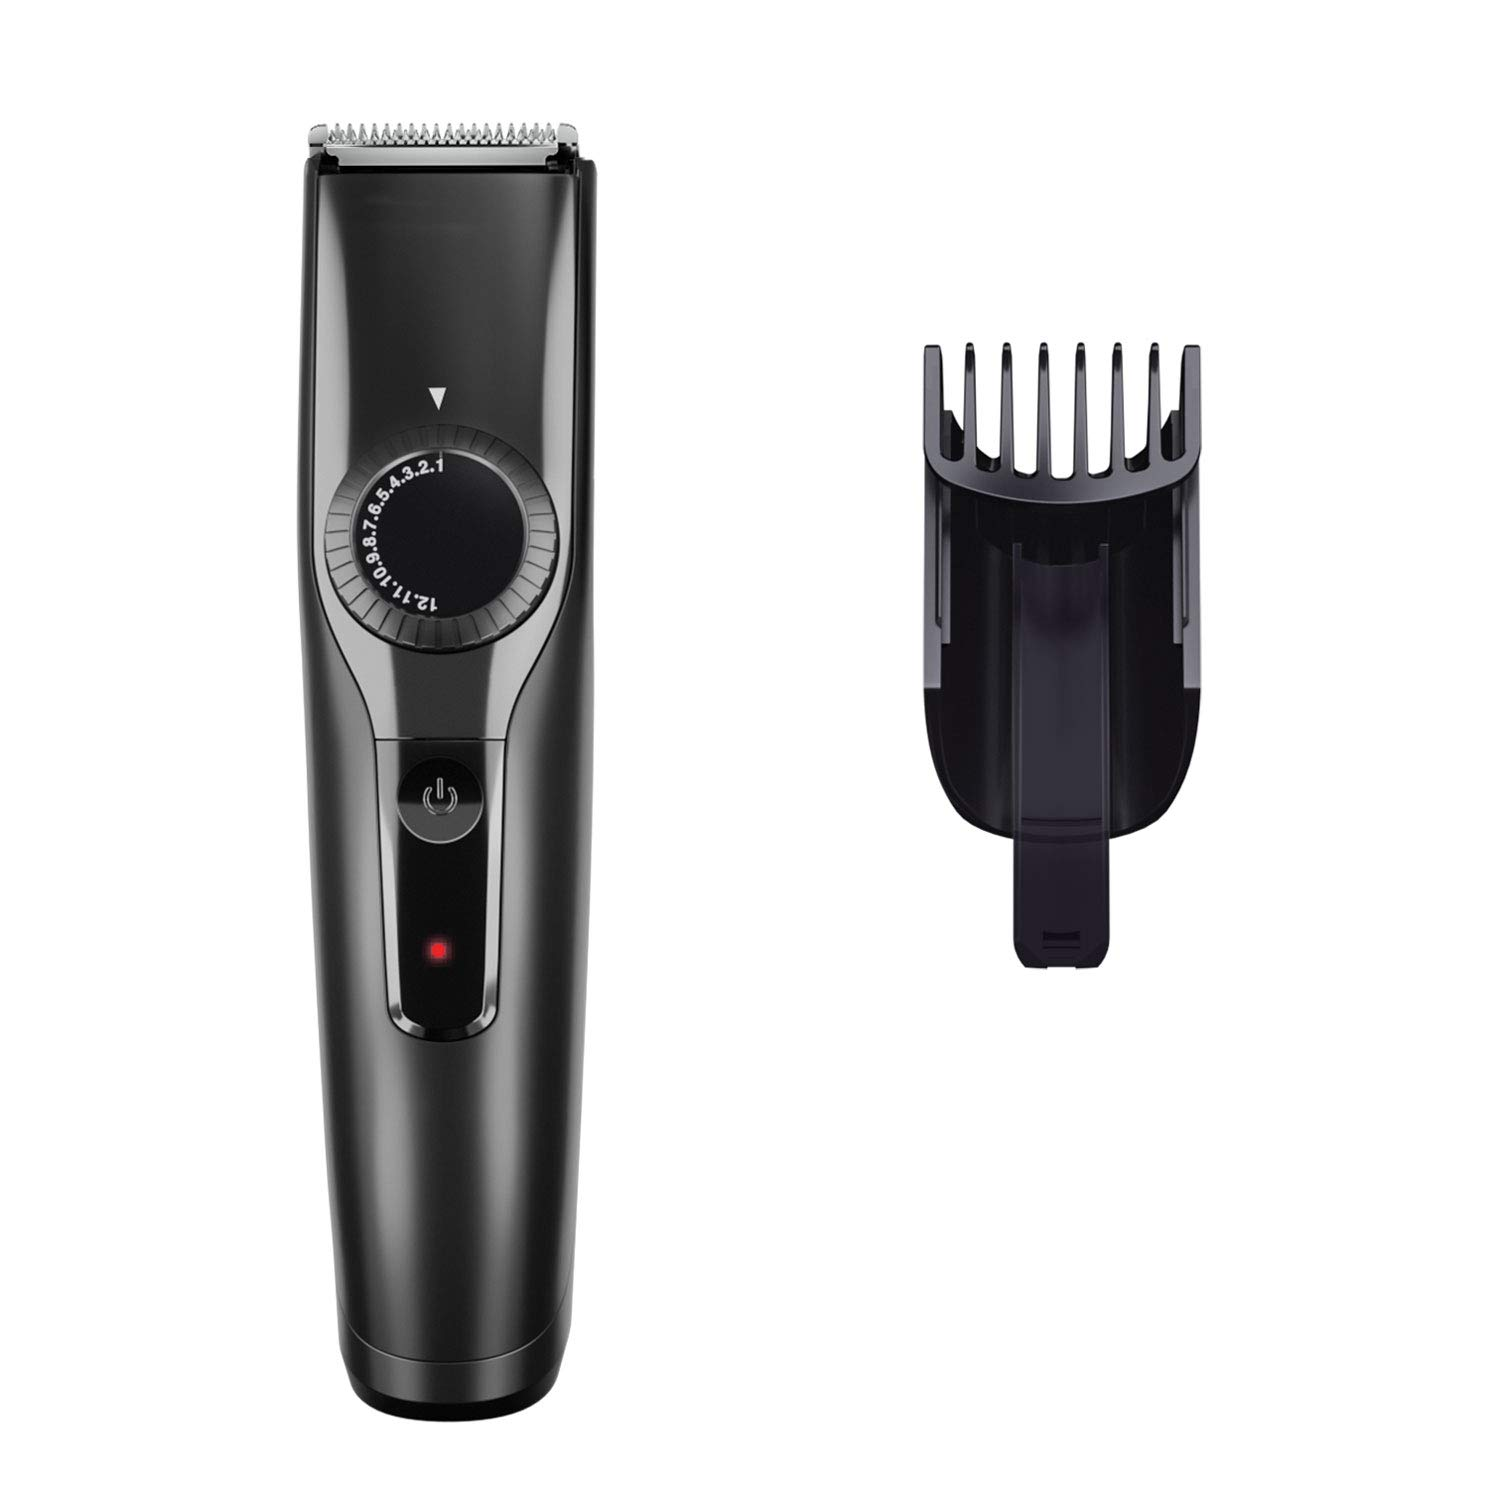 Vega T1 Cordless Beard Trimmer